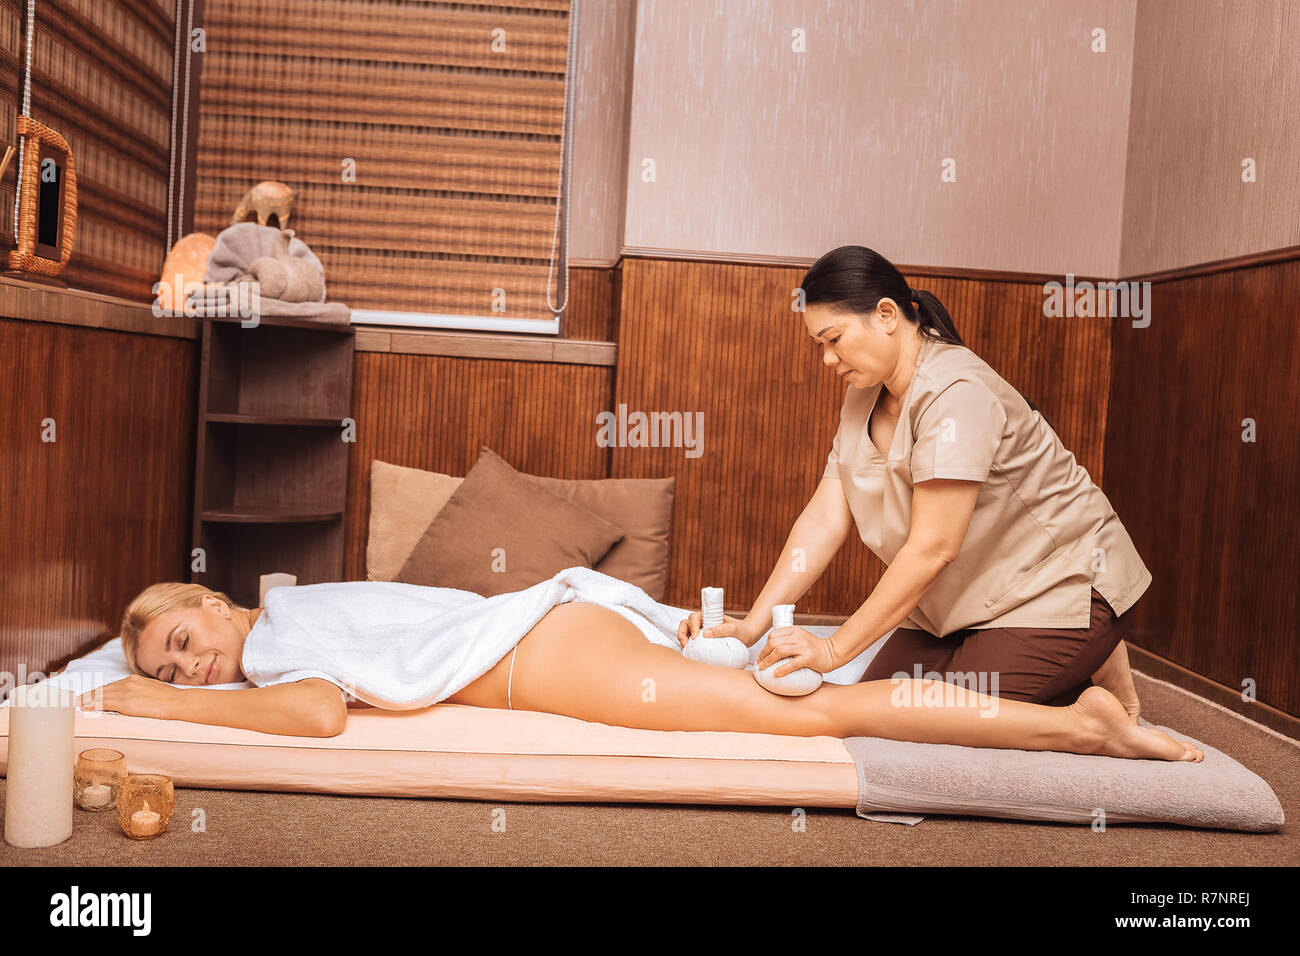 Nice skilled masseuse massaging her clients body Stock Photo